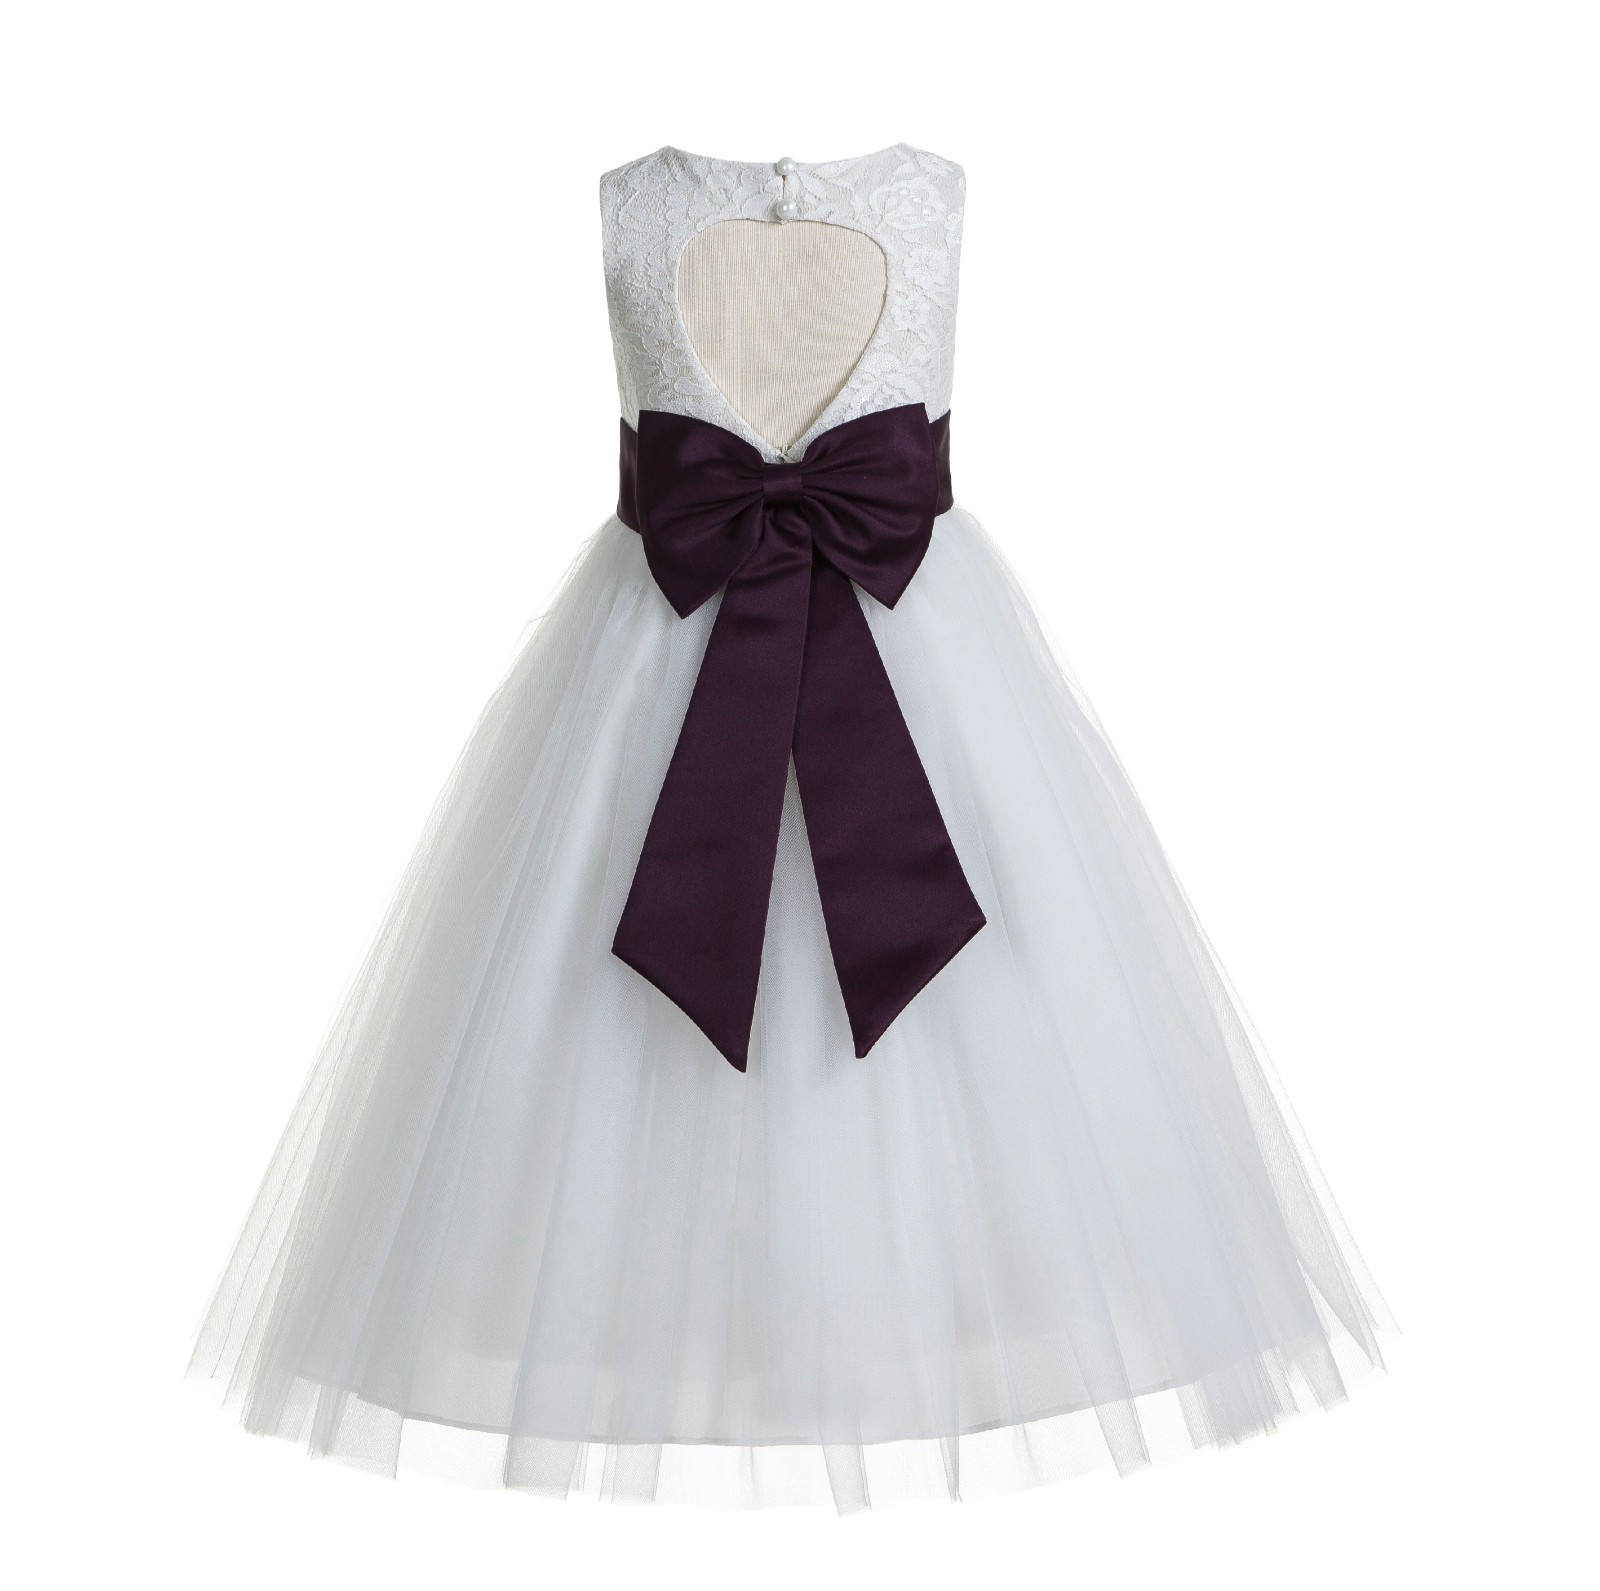 0a40daa36 White / Plum Floral Lace Heart Cutout Flower Girl Dress with Flower 172T